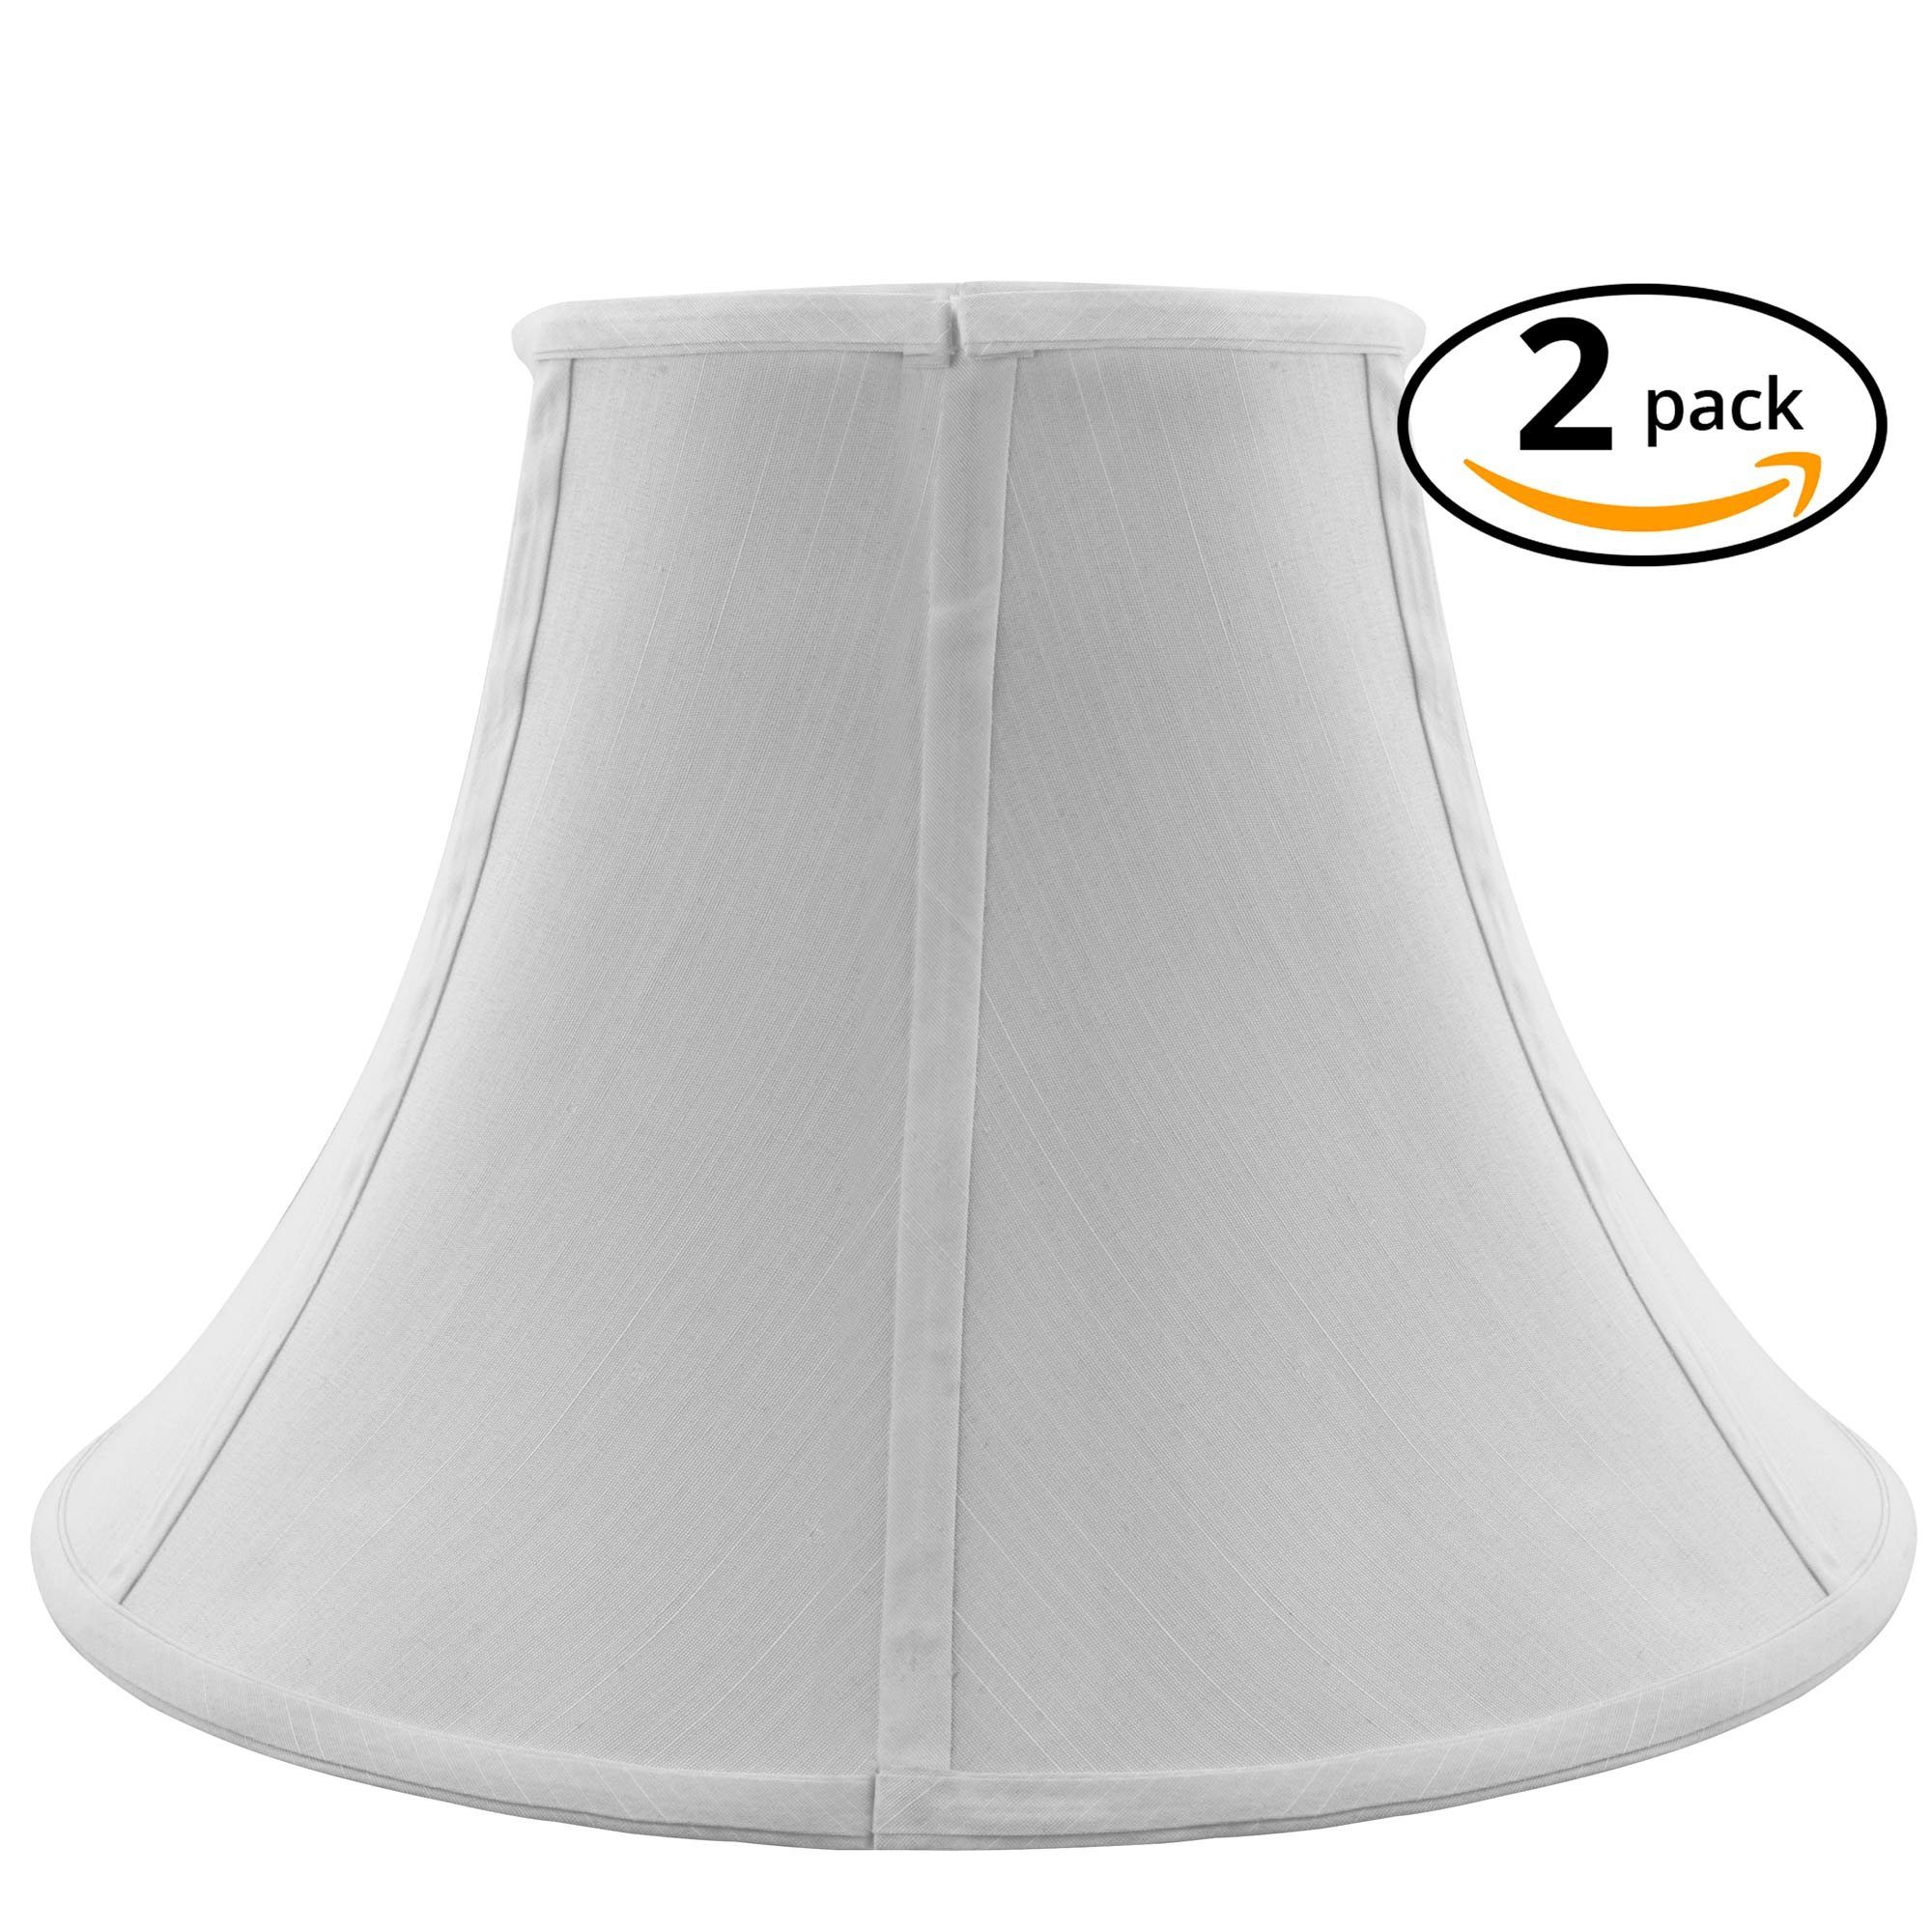 TRIPLE TREE Lamp Shade, Lamp Shade Set with Fabric,Zinc Coating Spider and Metal Frame for Pendant Lighting and Table Lamp, 10'' x 18'' x 11'',Set of 2 (White) by TRIPLE TREE